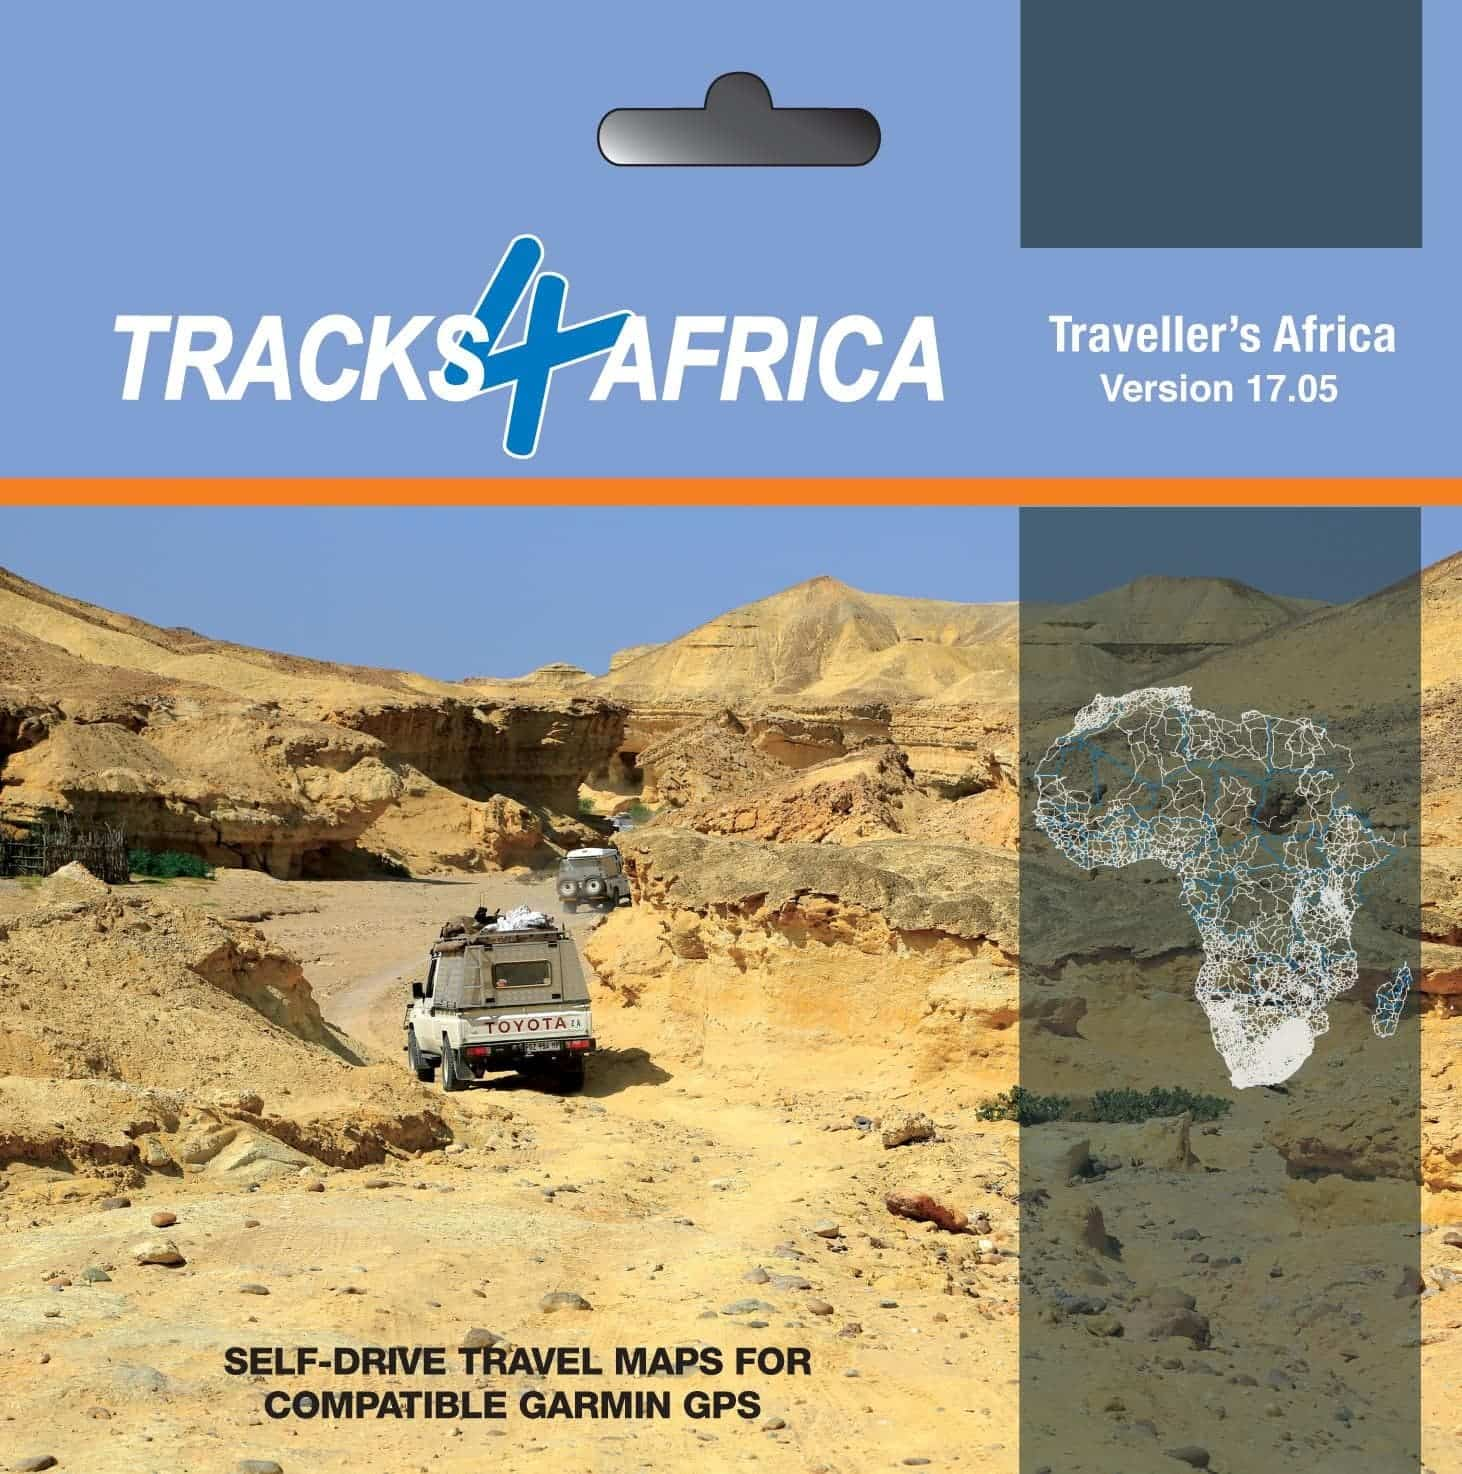 Tracks4Africa Traveller's Africa GPS Map: May 2017 update